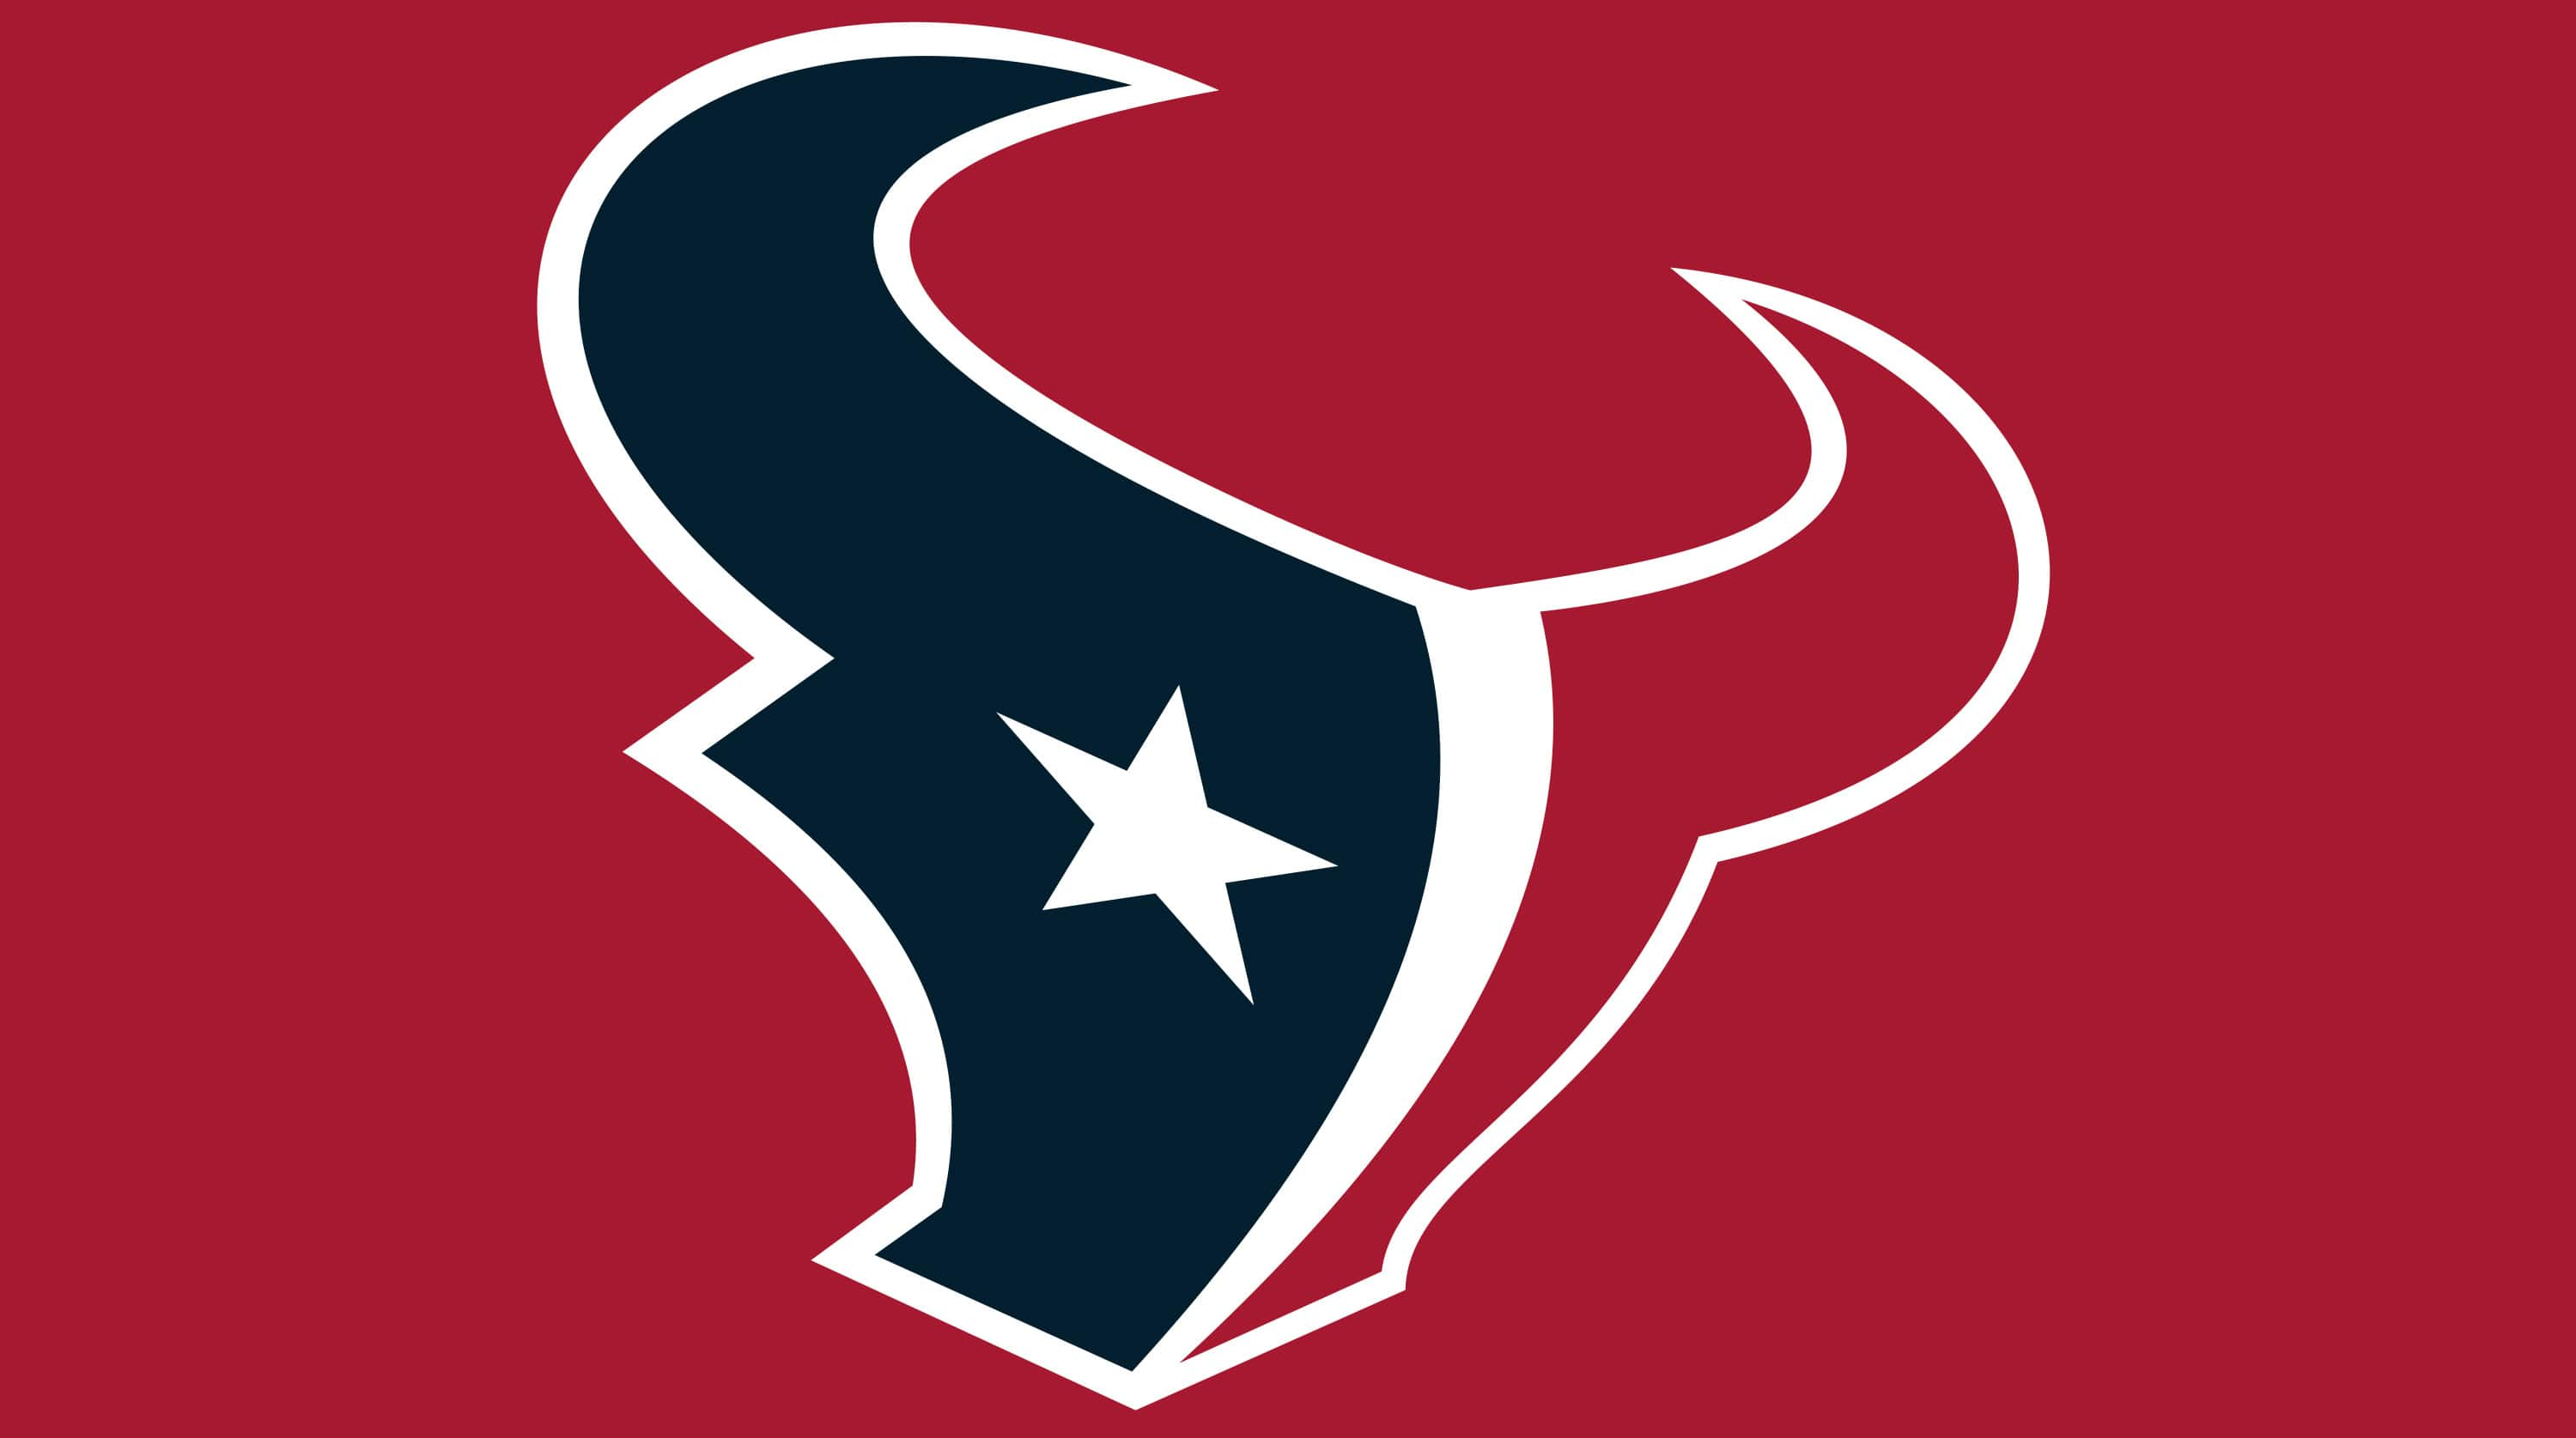 Houston Texans Logos.